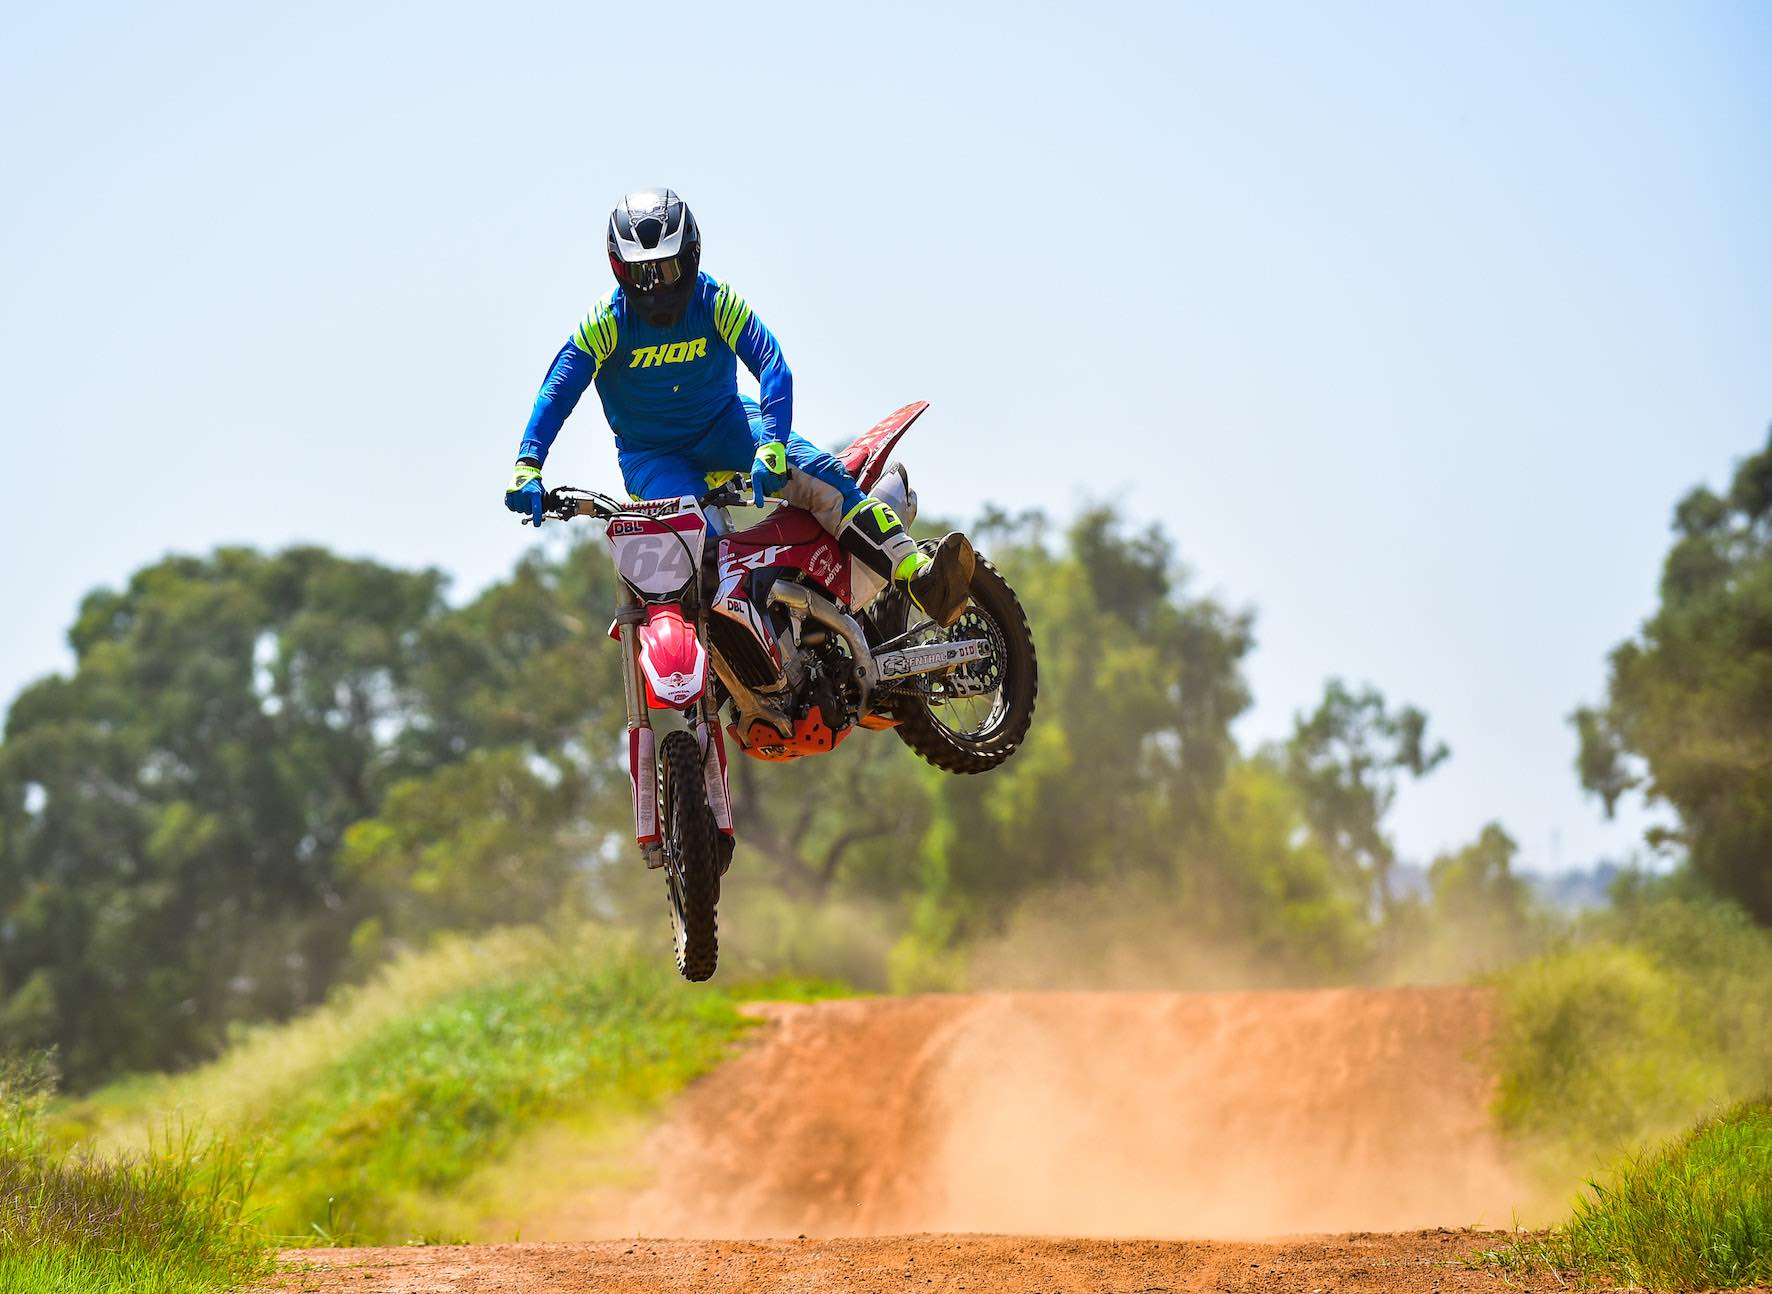 We put the We review the 2020 Thor MX Prime Pro Racewear to the test